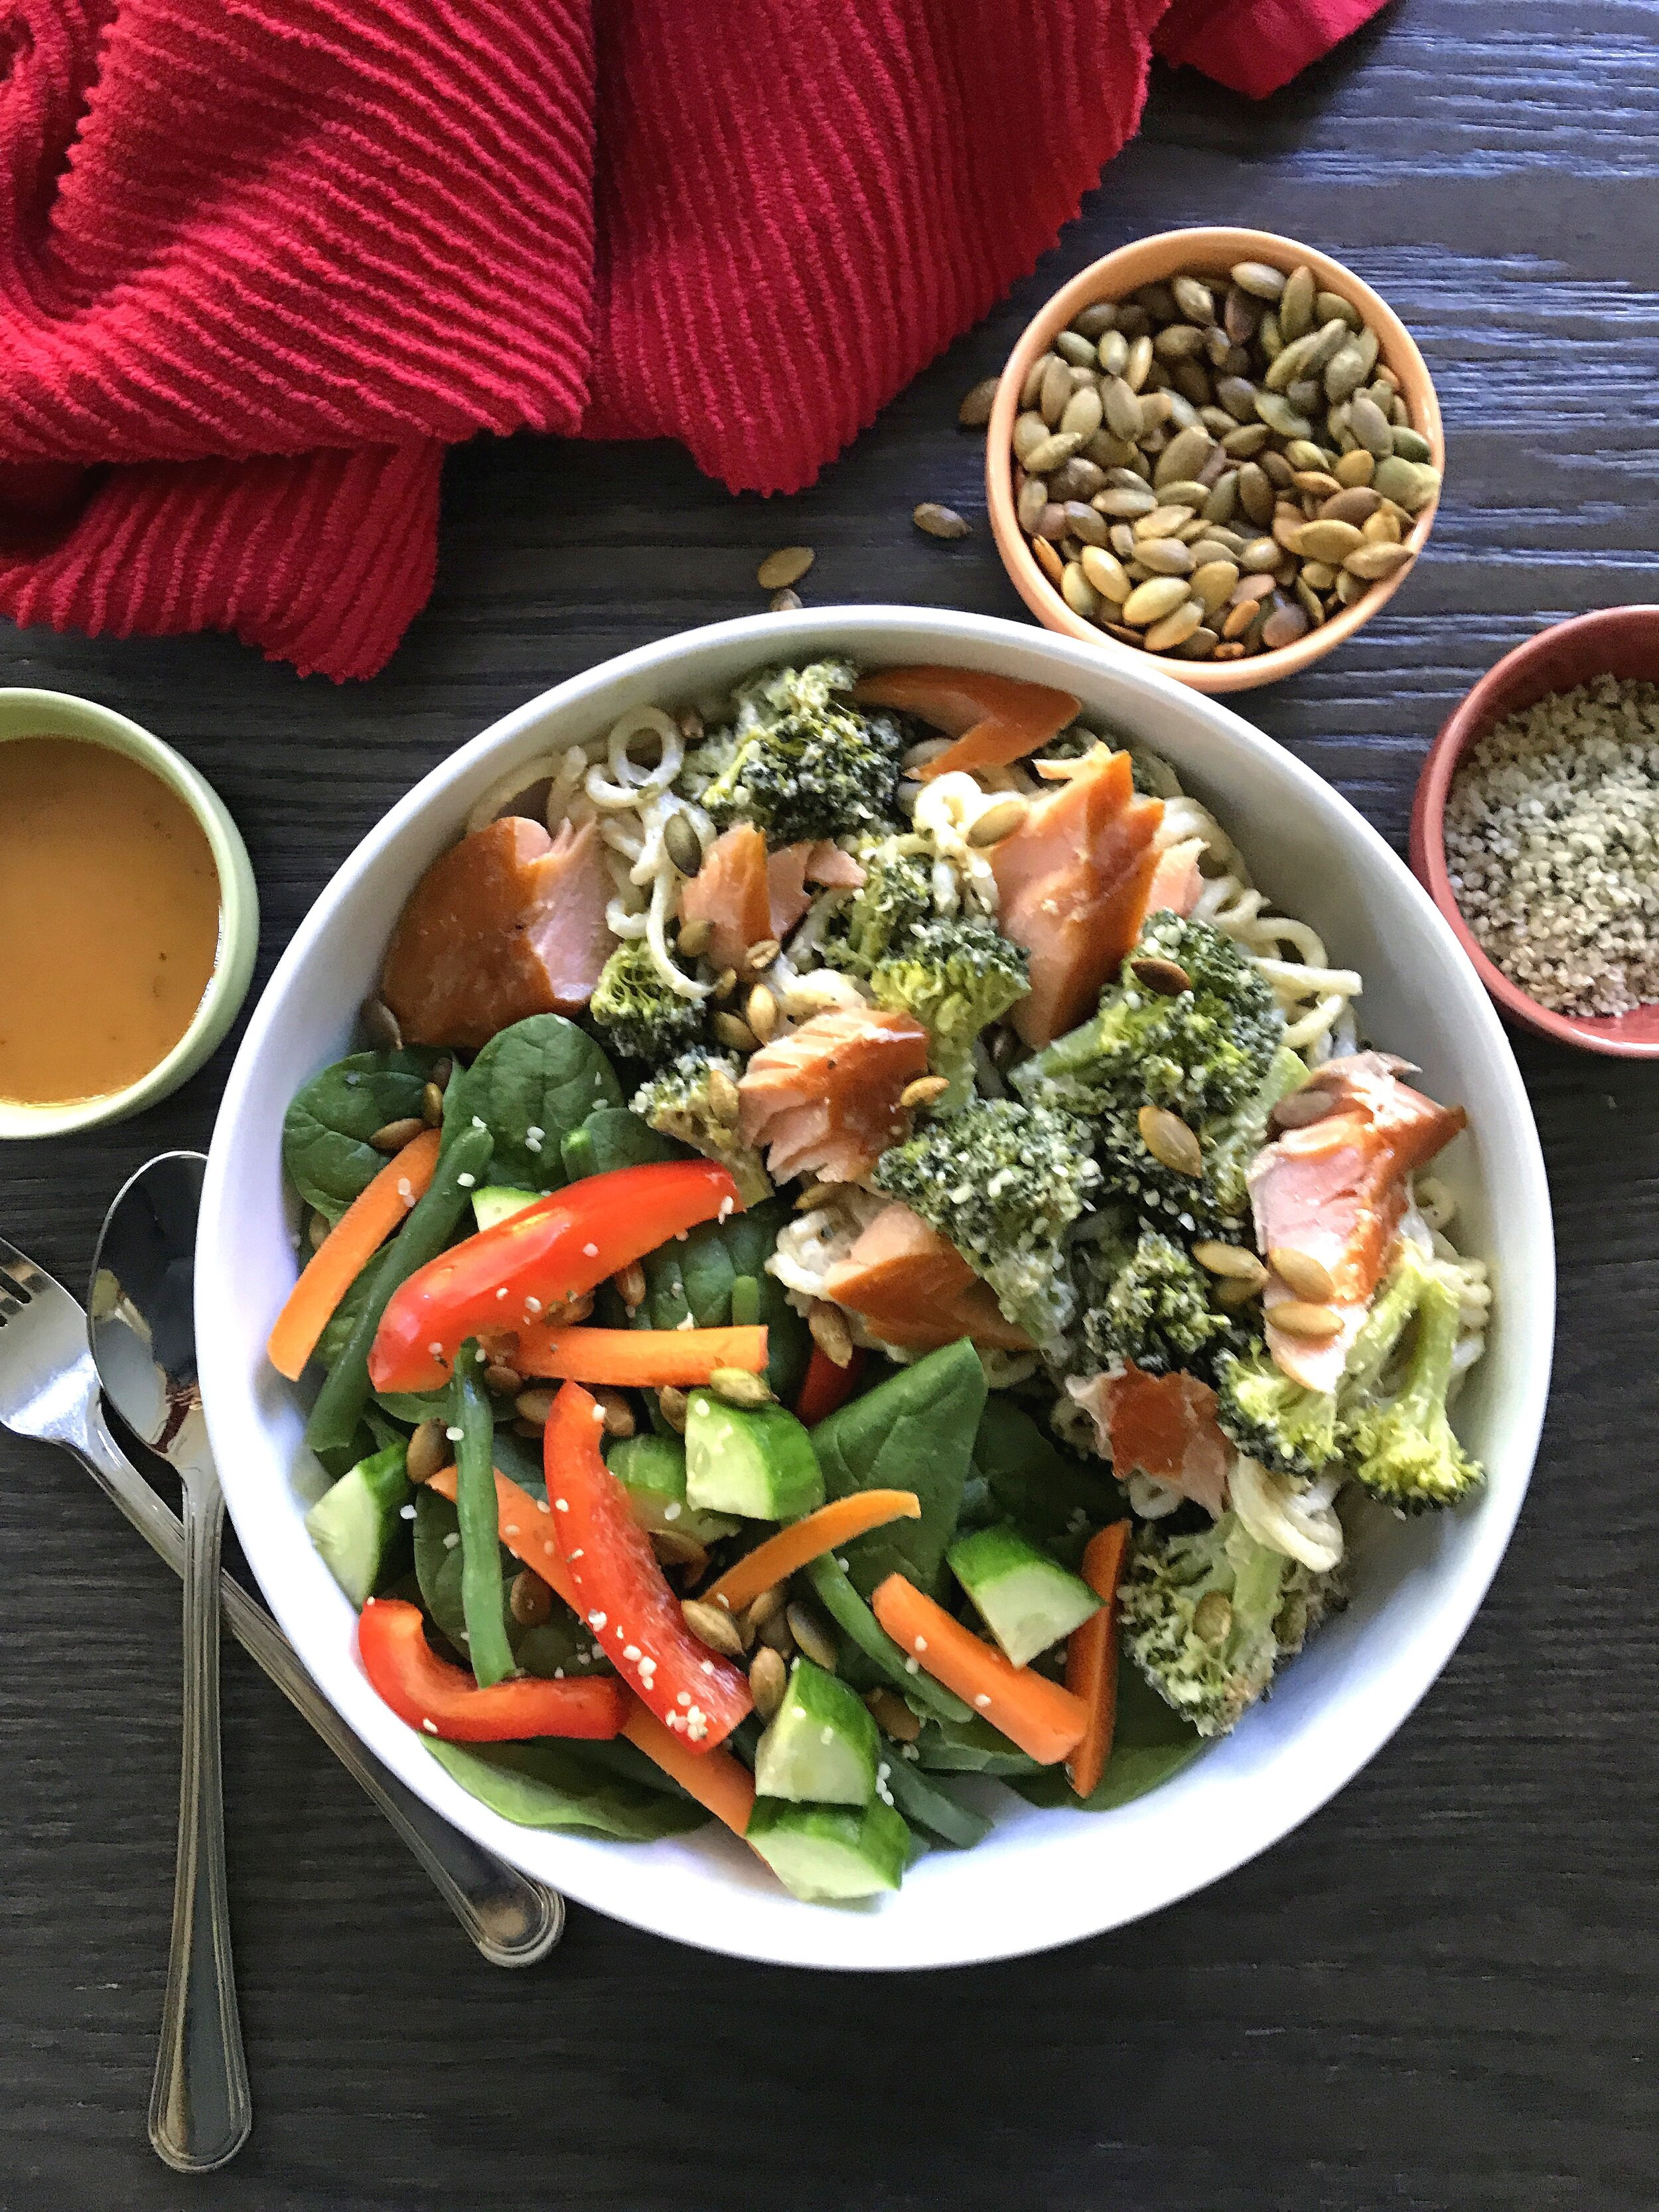 """Dairy-free """"Alfredo"""" Sauce tossed with konjac noodles, roasted broccoli, and smoked trout. Served with a mixed salad, toasted pumpkin seeds, and hemp hearts."""